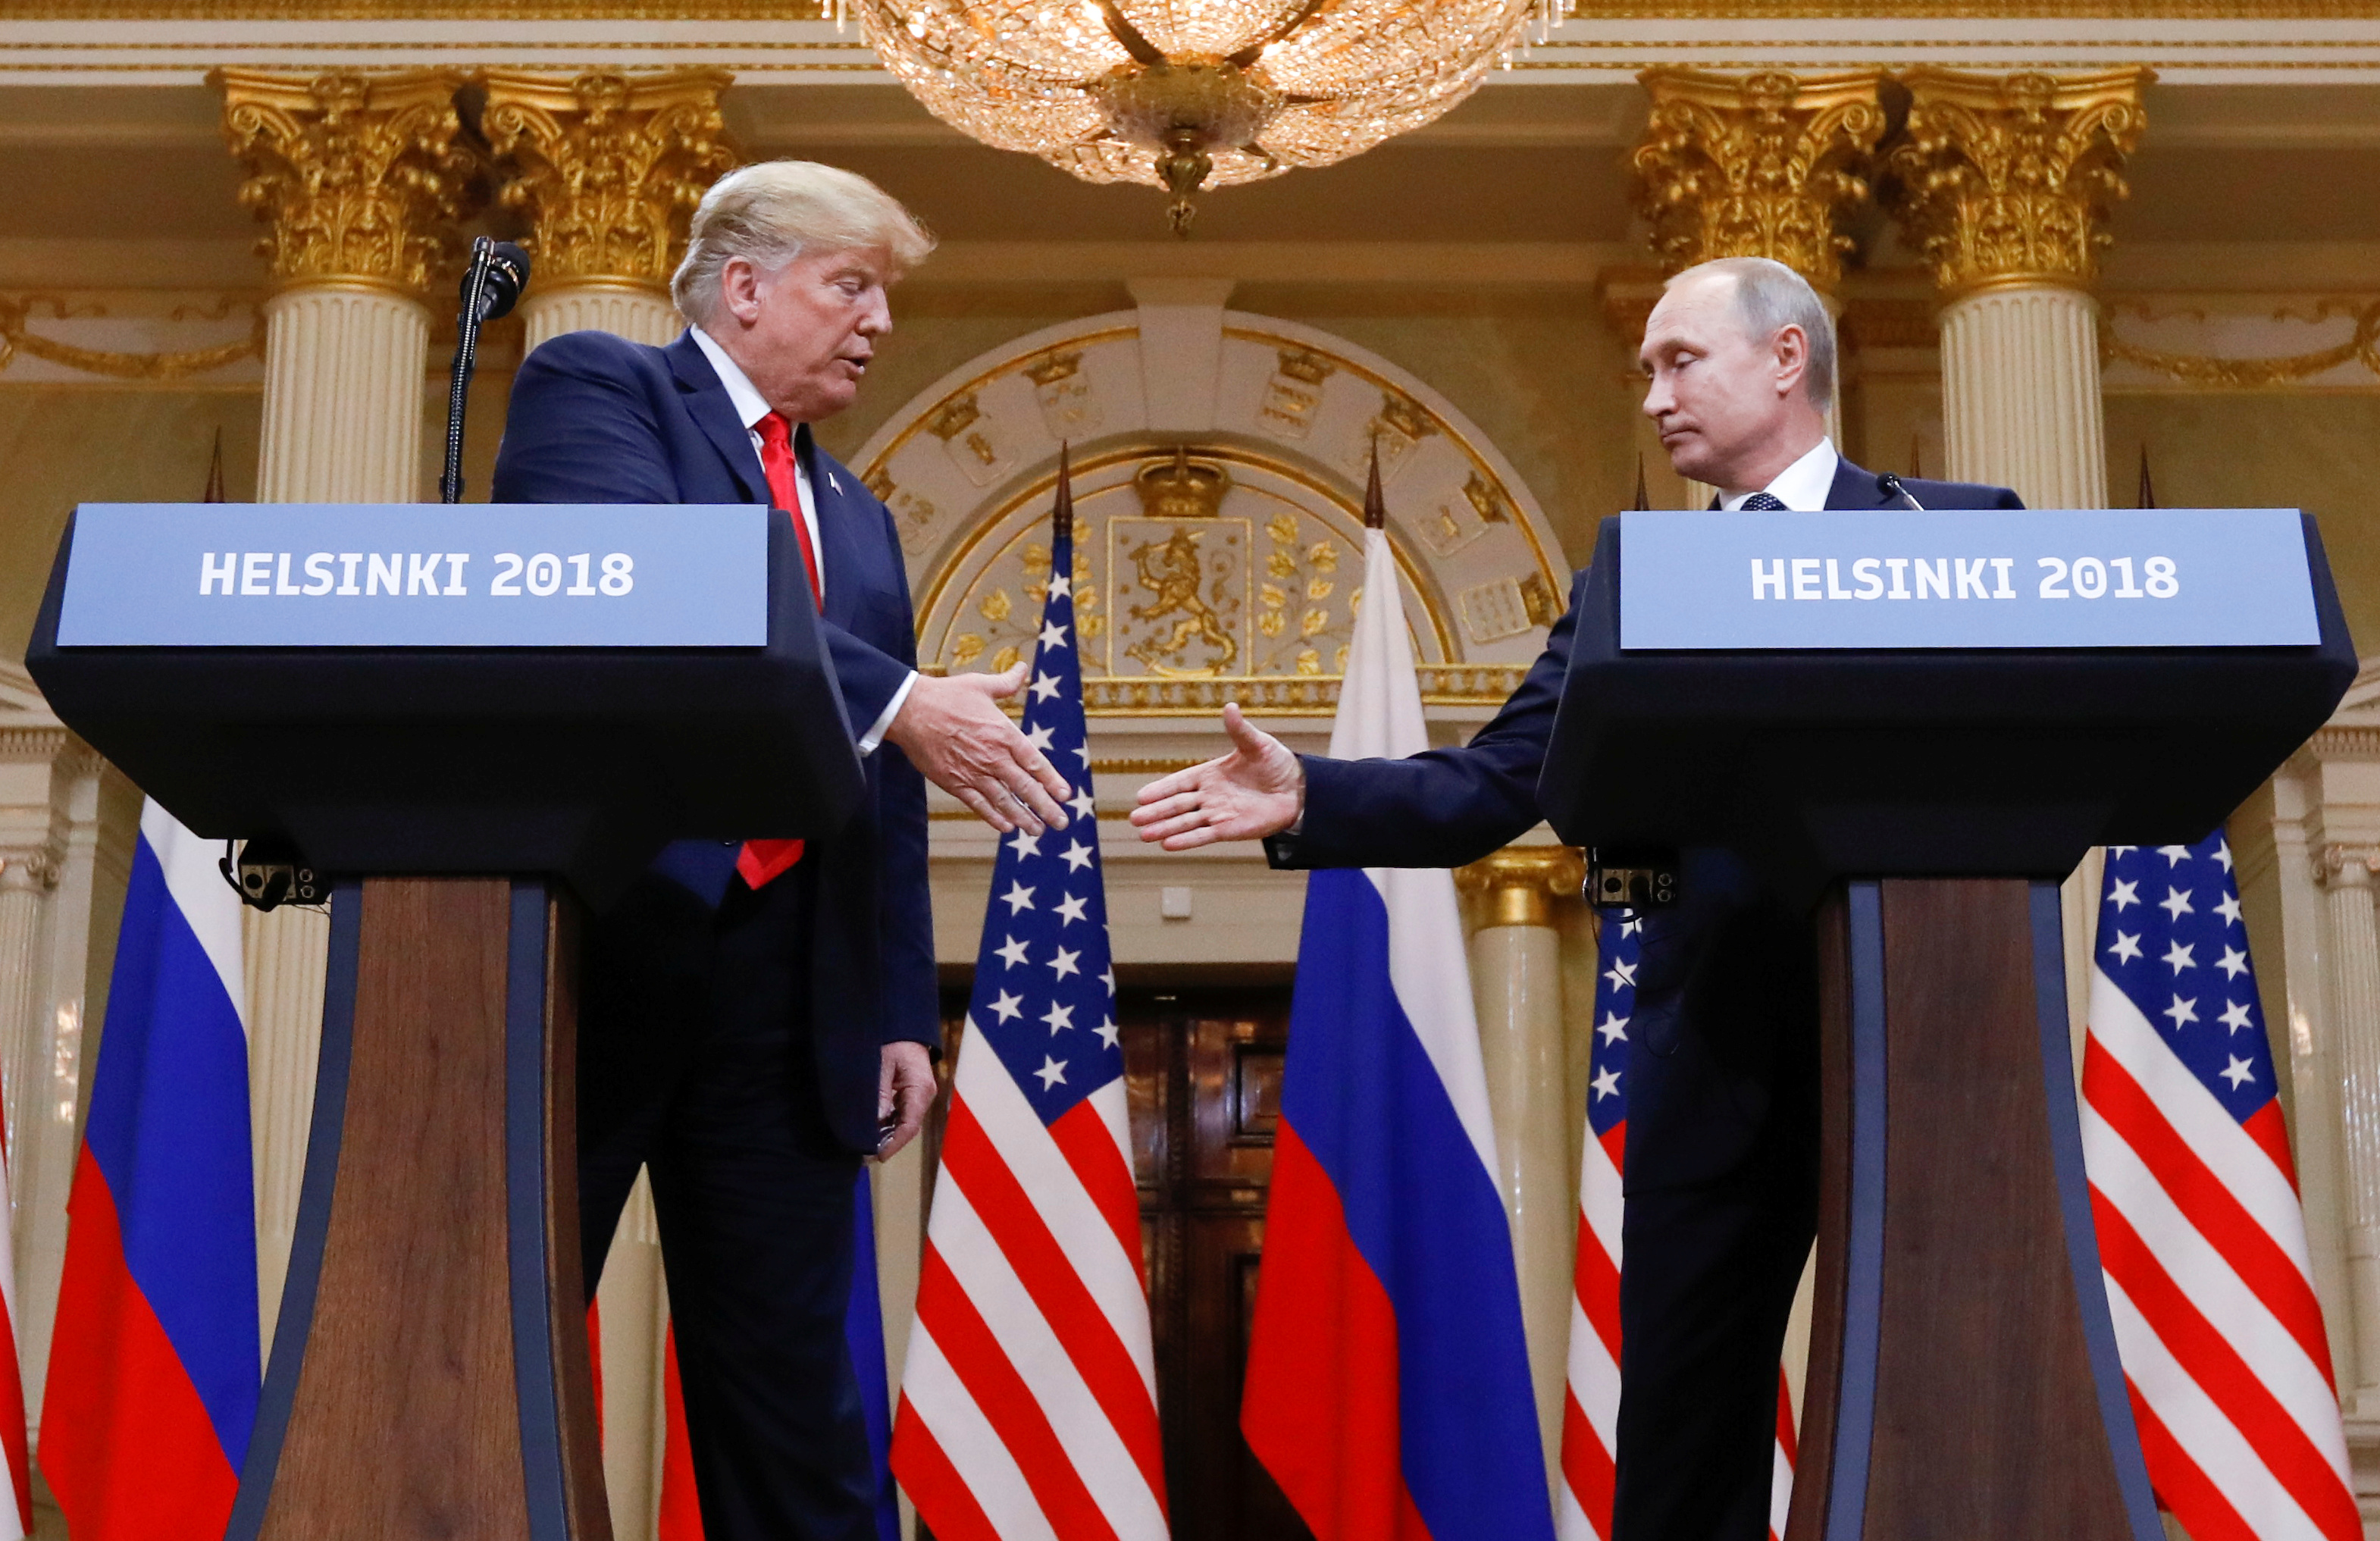 U.S. President Donald Trump and Russia's President Vladimir Putin shake hands during a joint news conference after their meeting in Helsinki, Finland, July 16, 2018. REUTERS/Kevin Lamarque - RC145902DE10